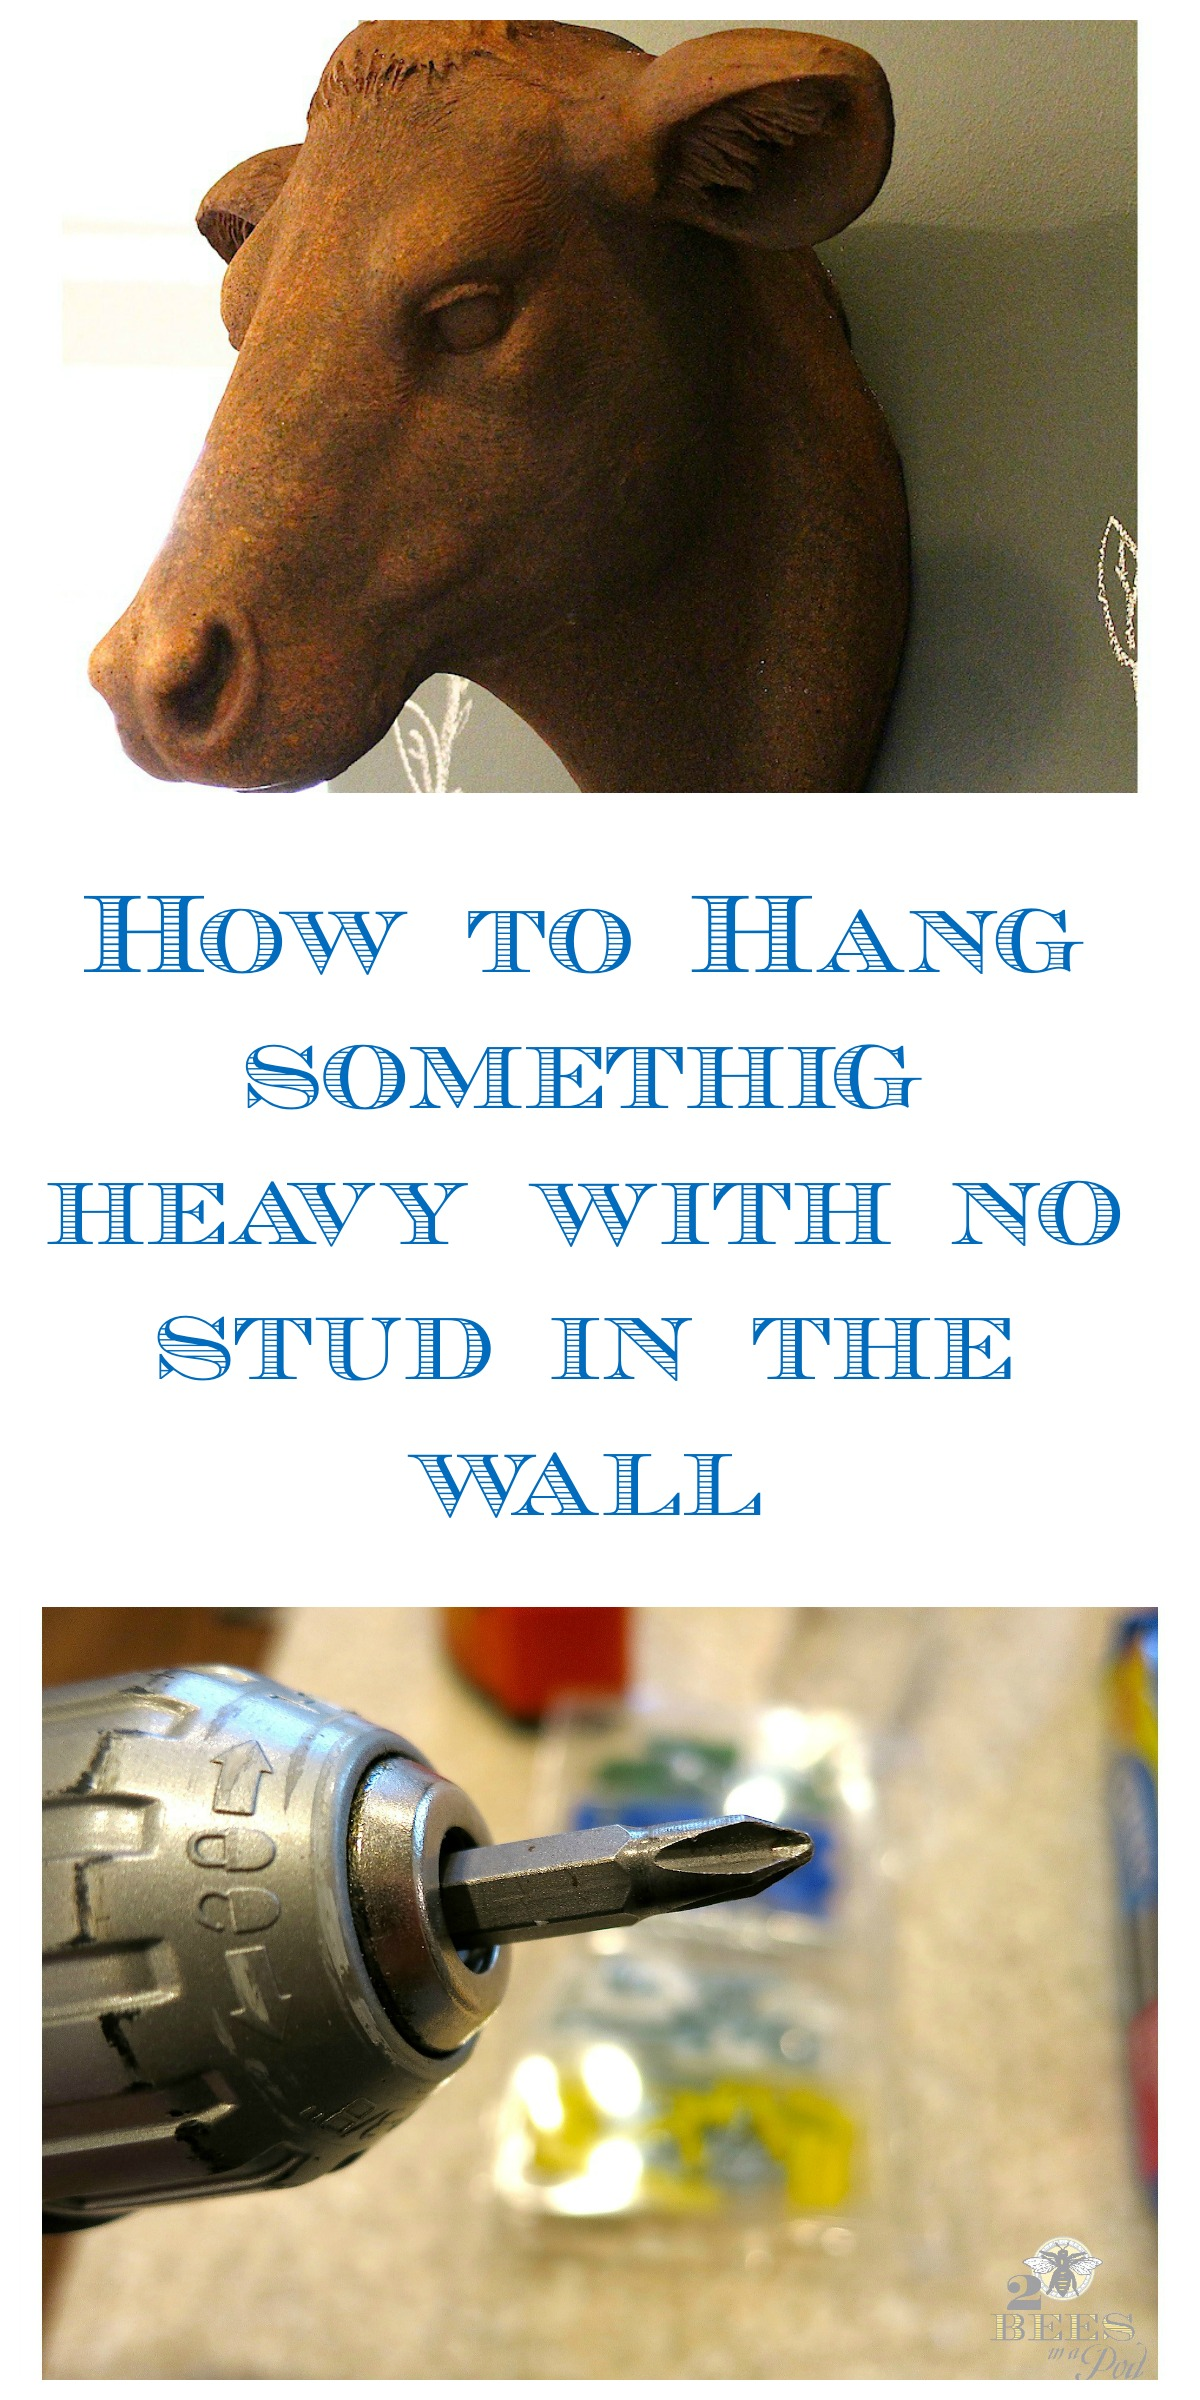 How To Hang Something Heavy When There Is No Stud In The